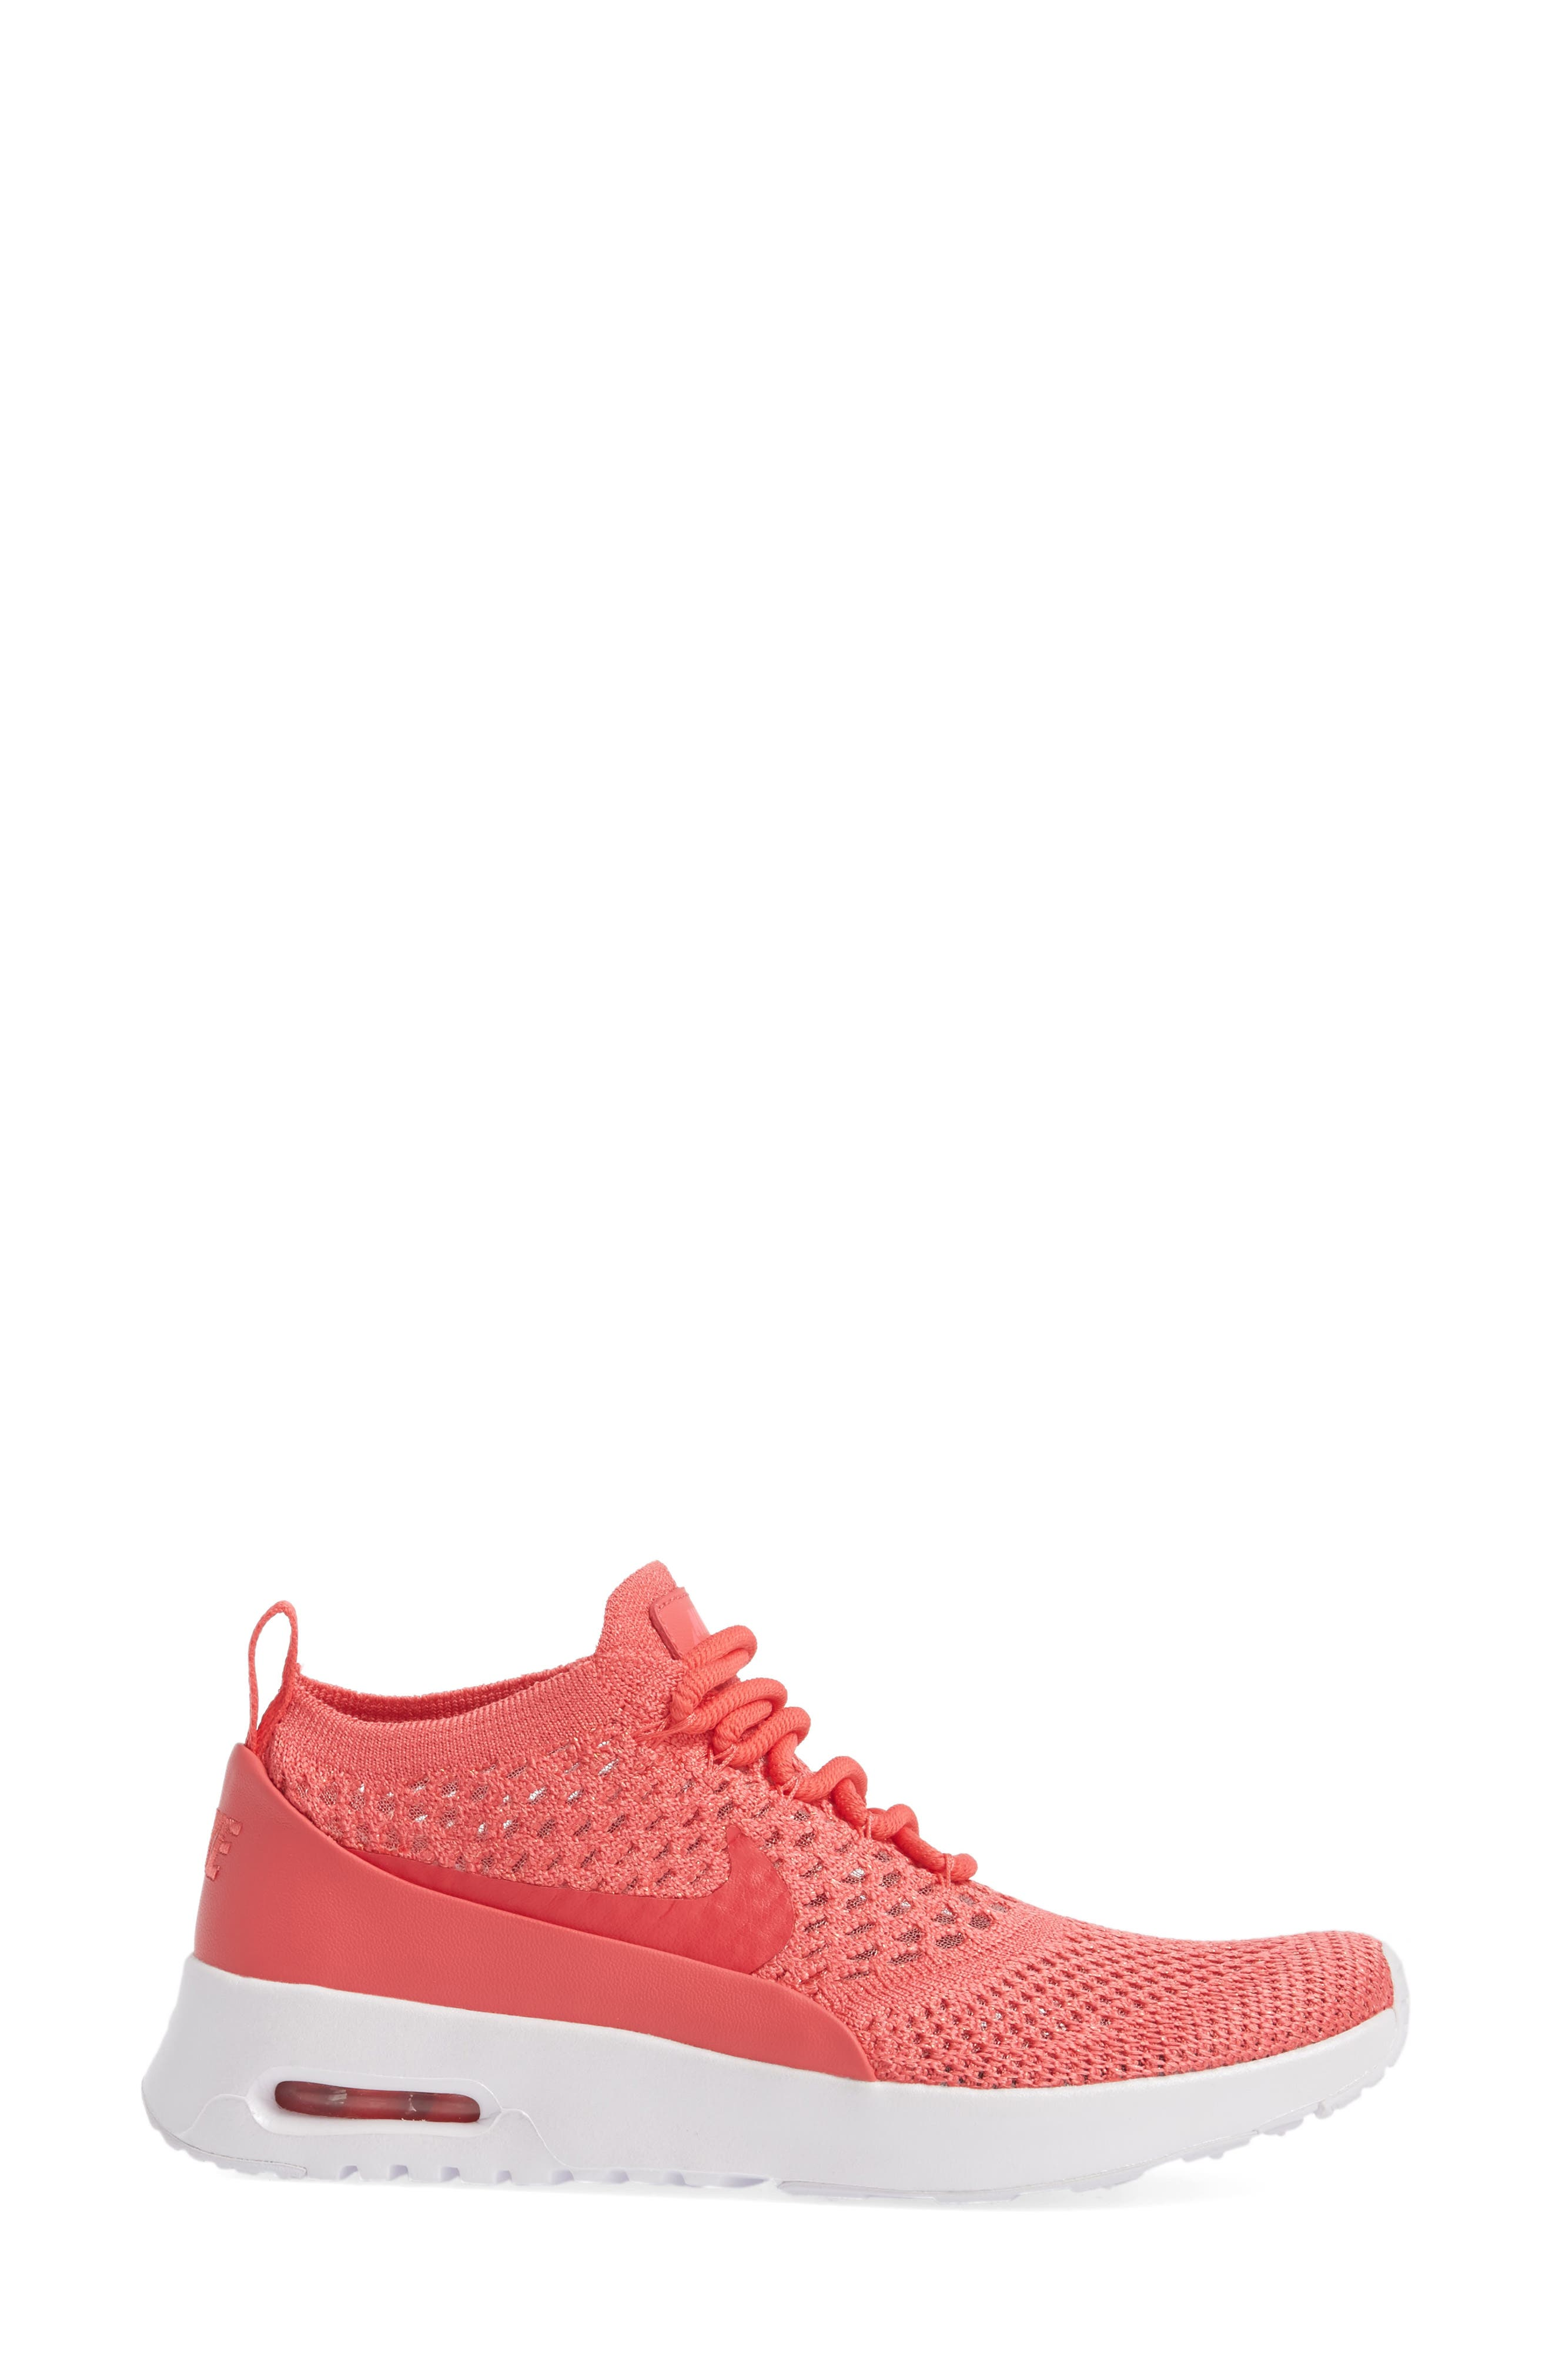 Air Max Thea Ultra Flyknit Sneaker,                             Alternate thumbnail 26, color,